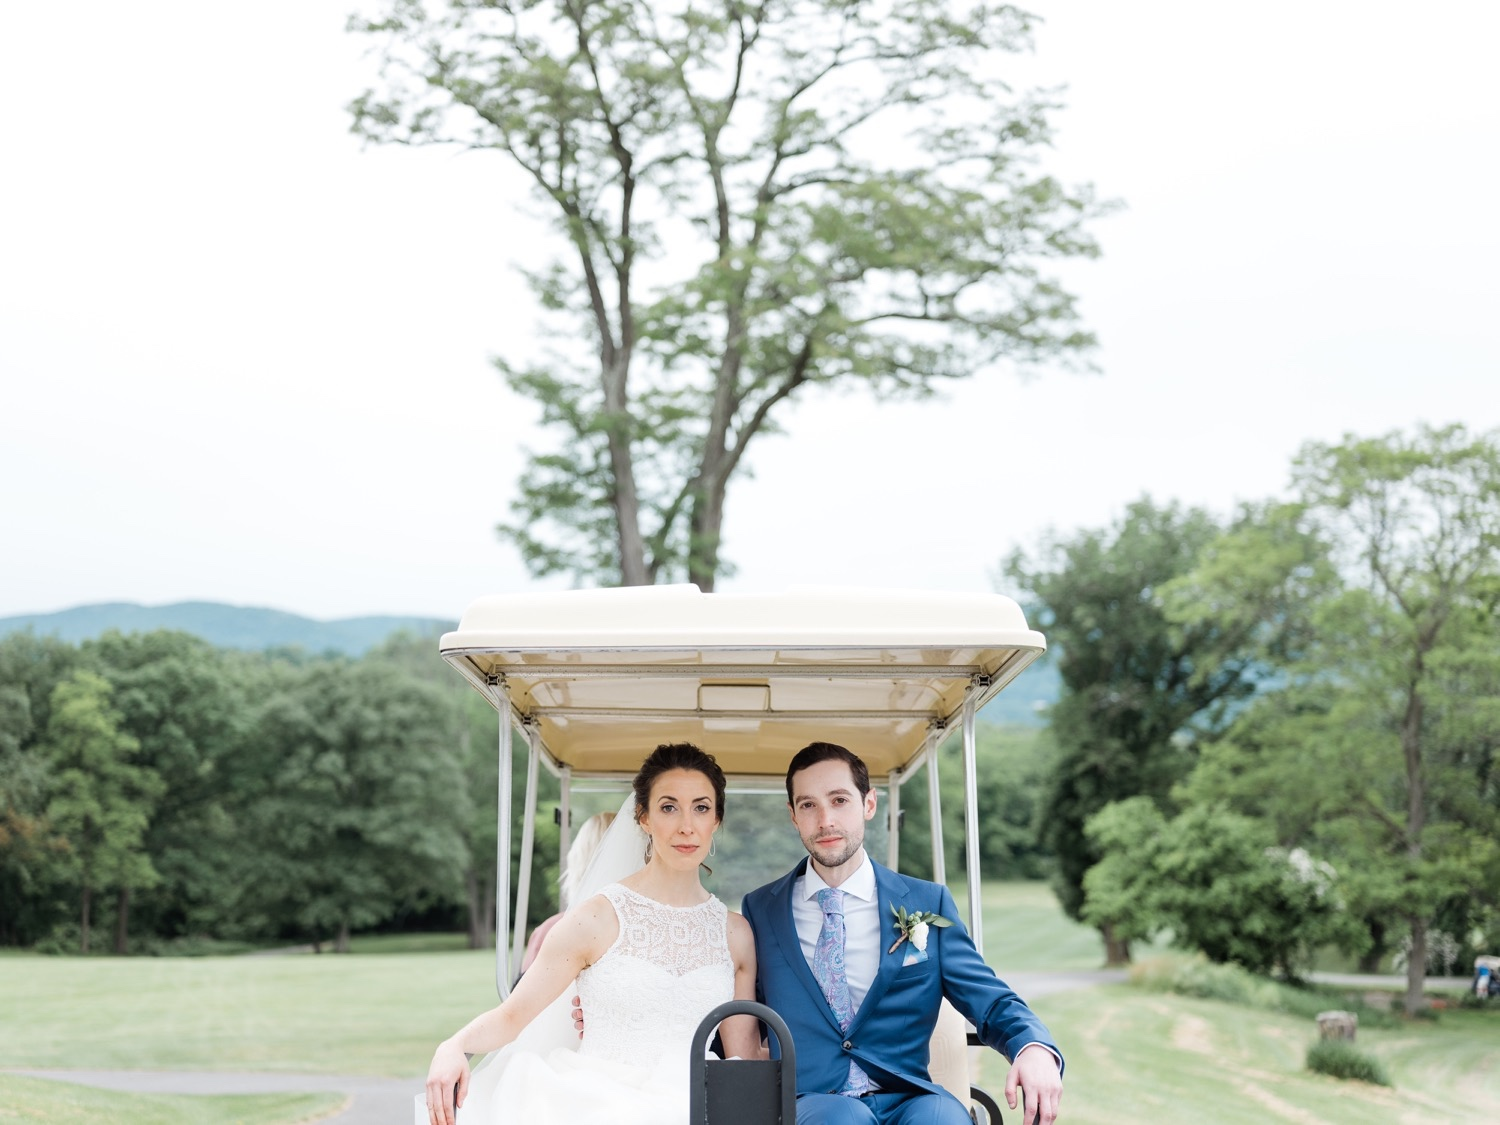 The Garrison Wedding, The Garrison venue, Hudson Valley wedding, hudson valley wedding photographer, catskills wedding photographer, the garrison wedding photos, best catskills wedding photographer, golf cart, golf cart wedding ideas